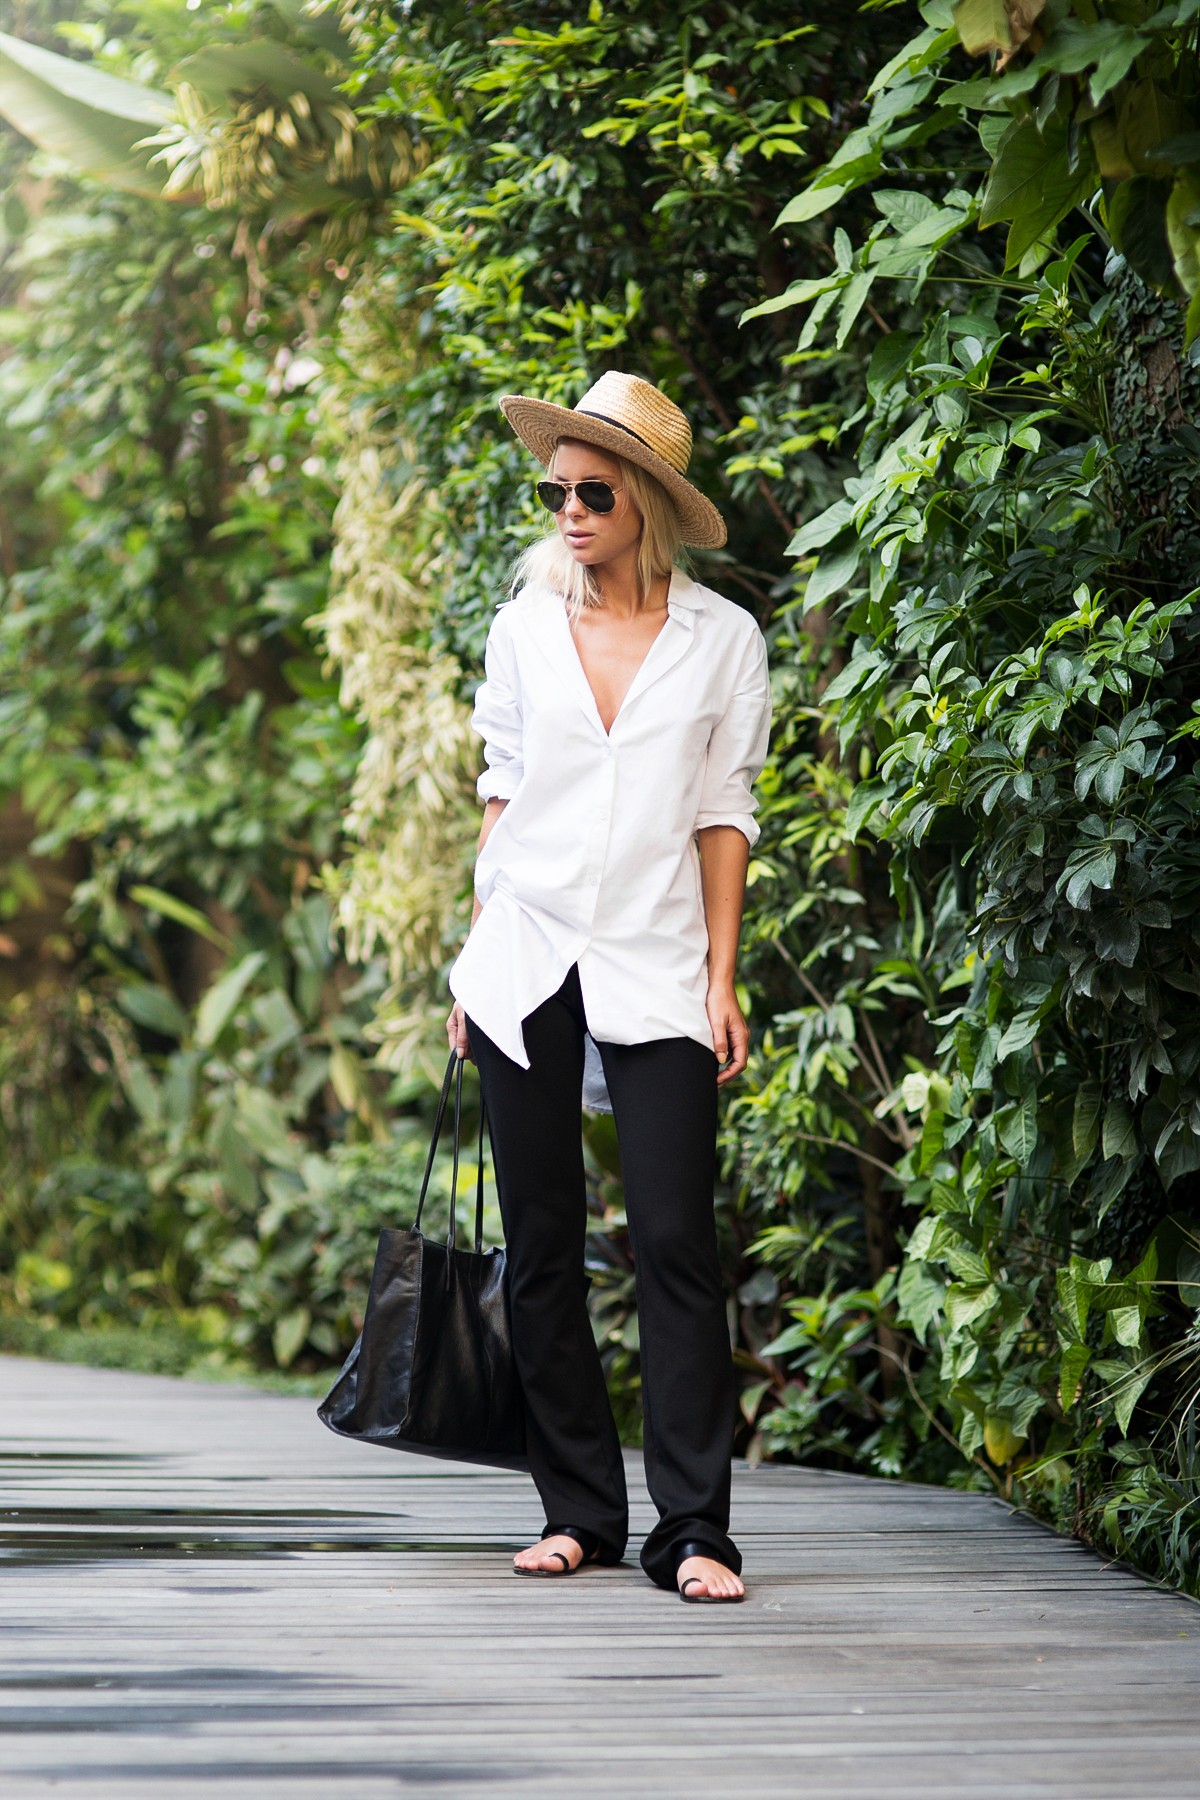 Victoria Tornegren in a black and white outfit, white shirt, black pants and a leather handbag Shirt: Rut&Circle, Pants: Gina Tricot, Bag: Asos